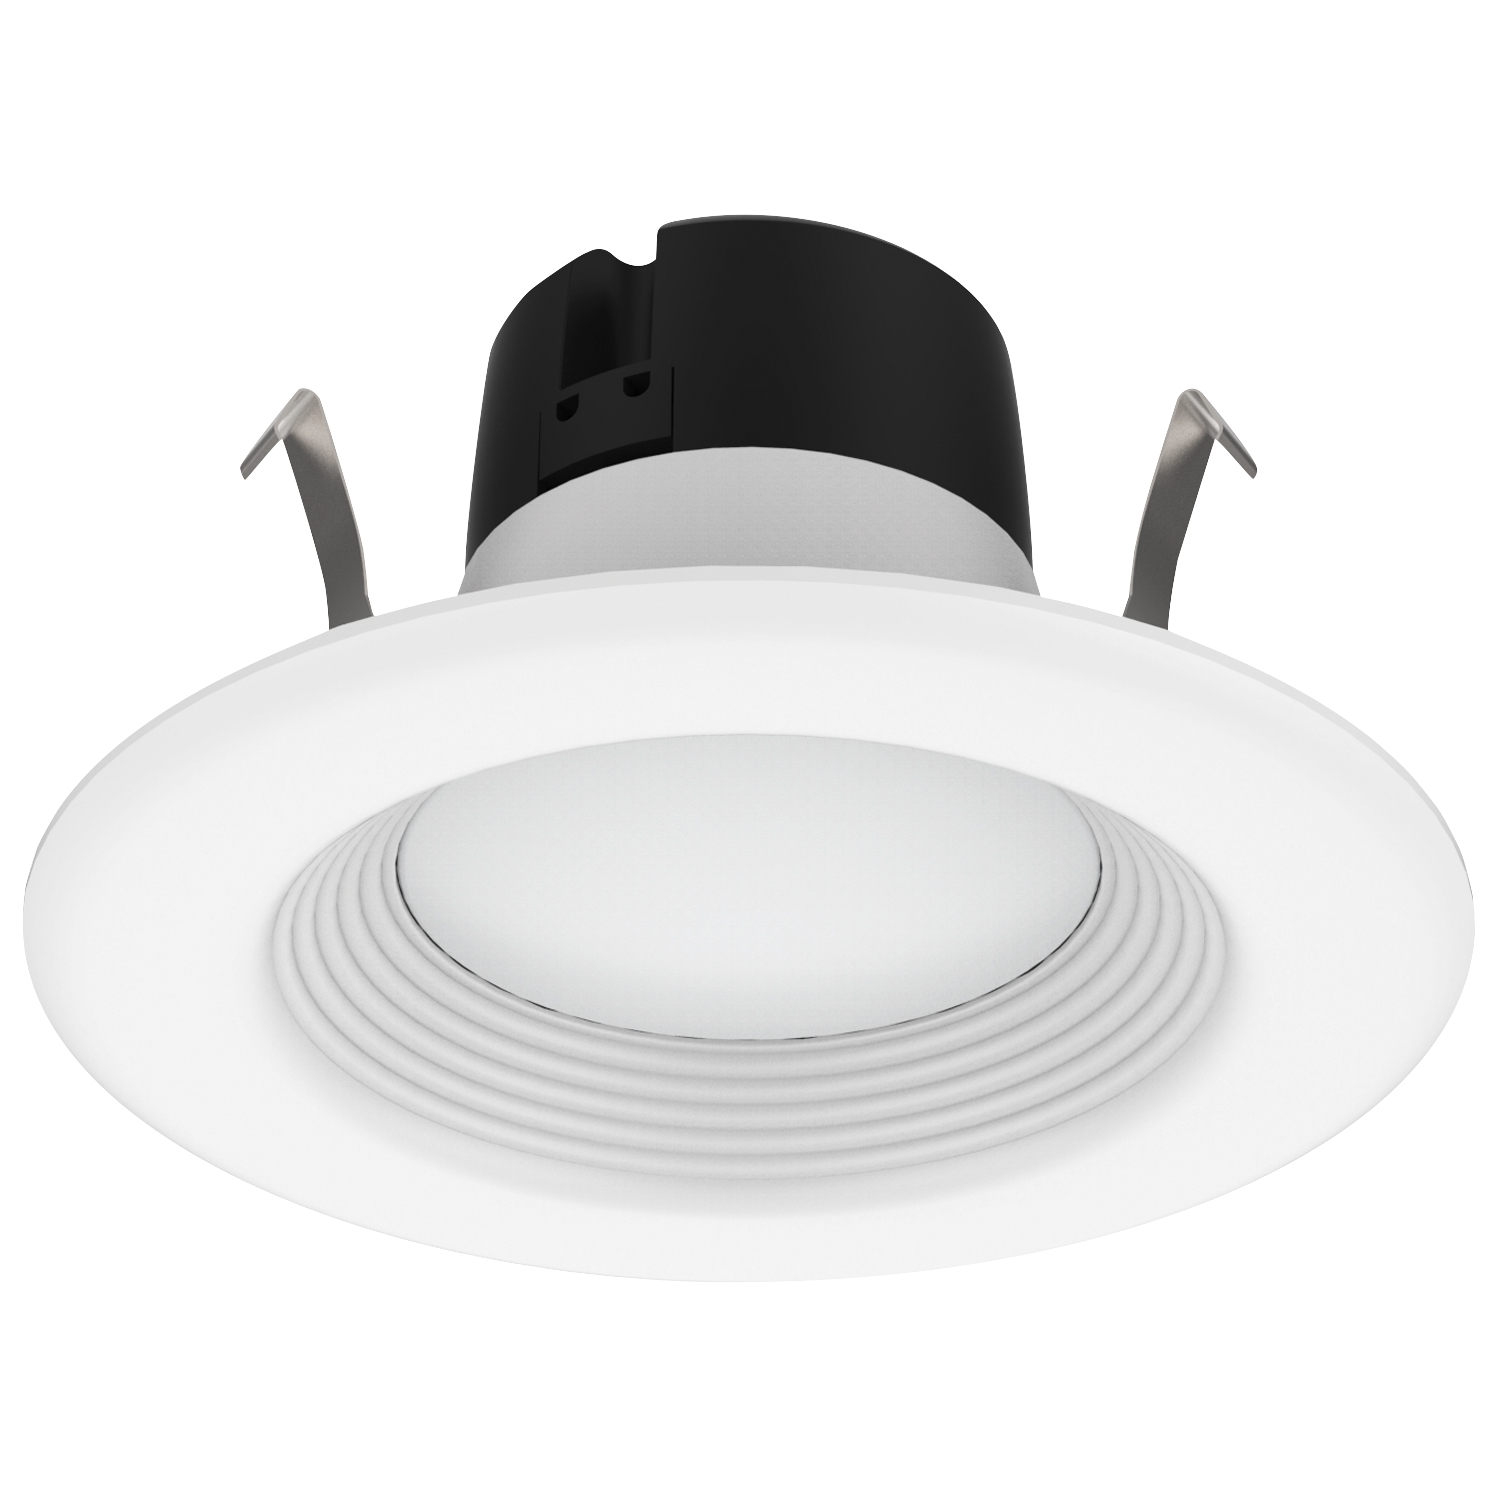 "DL4FR9/927/RT2/LED 99823 4"" LED RETROFIT DOWNLIGHT 8.5W 2700K DIMMABLE E26 REPLACEABLE-WHITE TRIM-WHITE BAFFLE"